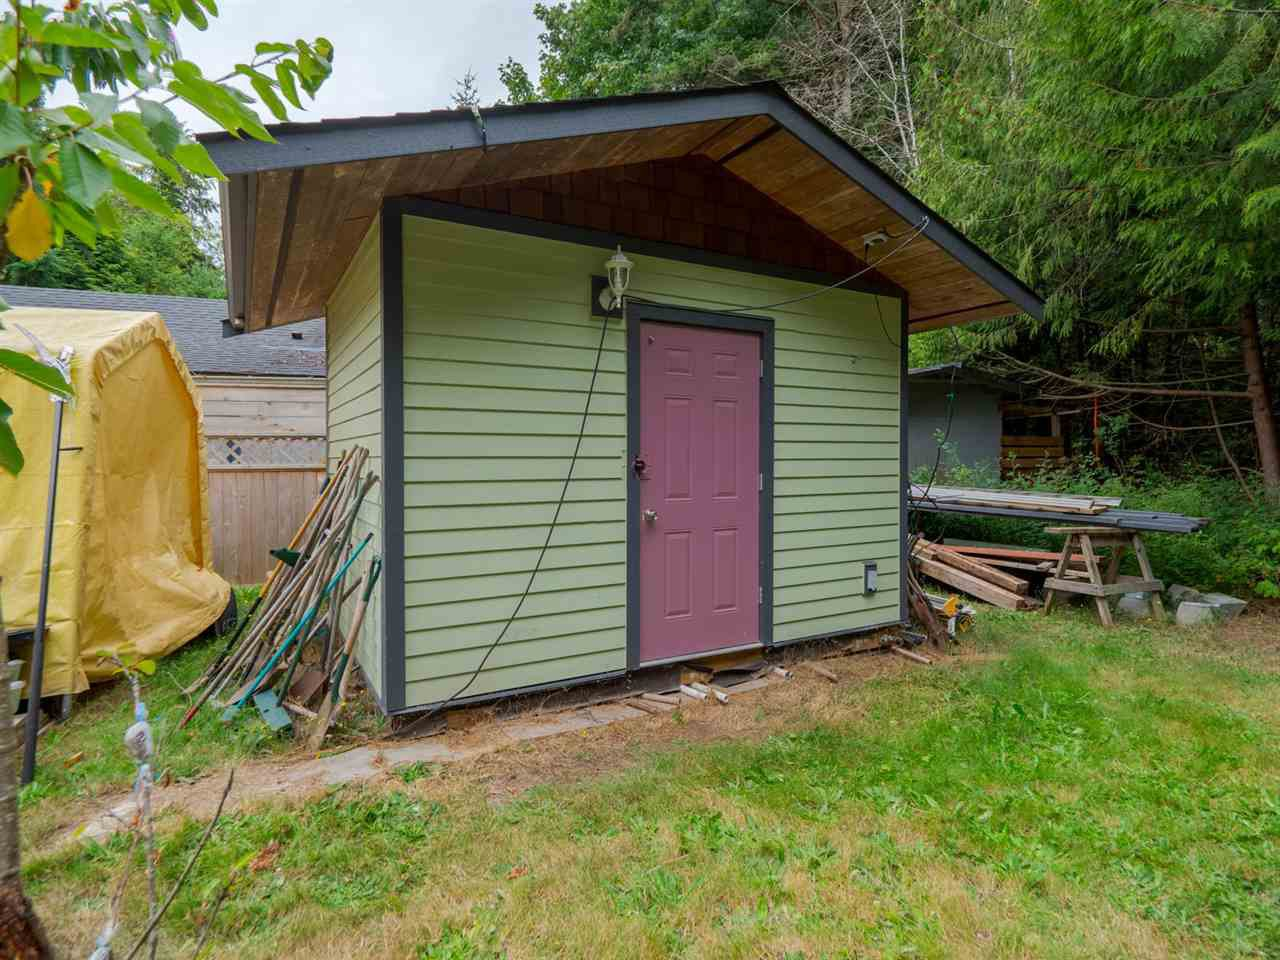 Photo 16: Photos: 1625 BLOWER Road in Sechelt: Sechelt District House for sale (Sunshine Coast)  : MLS®# R2394268